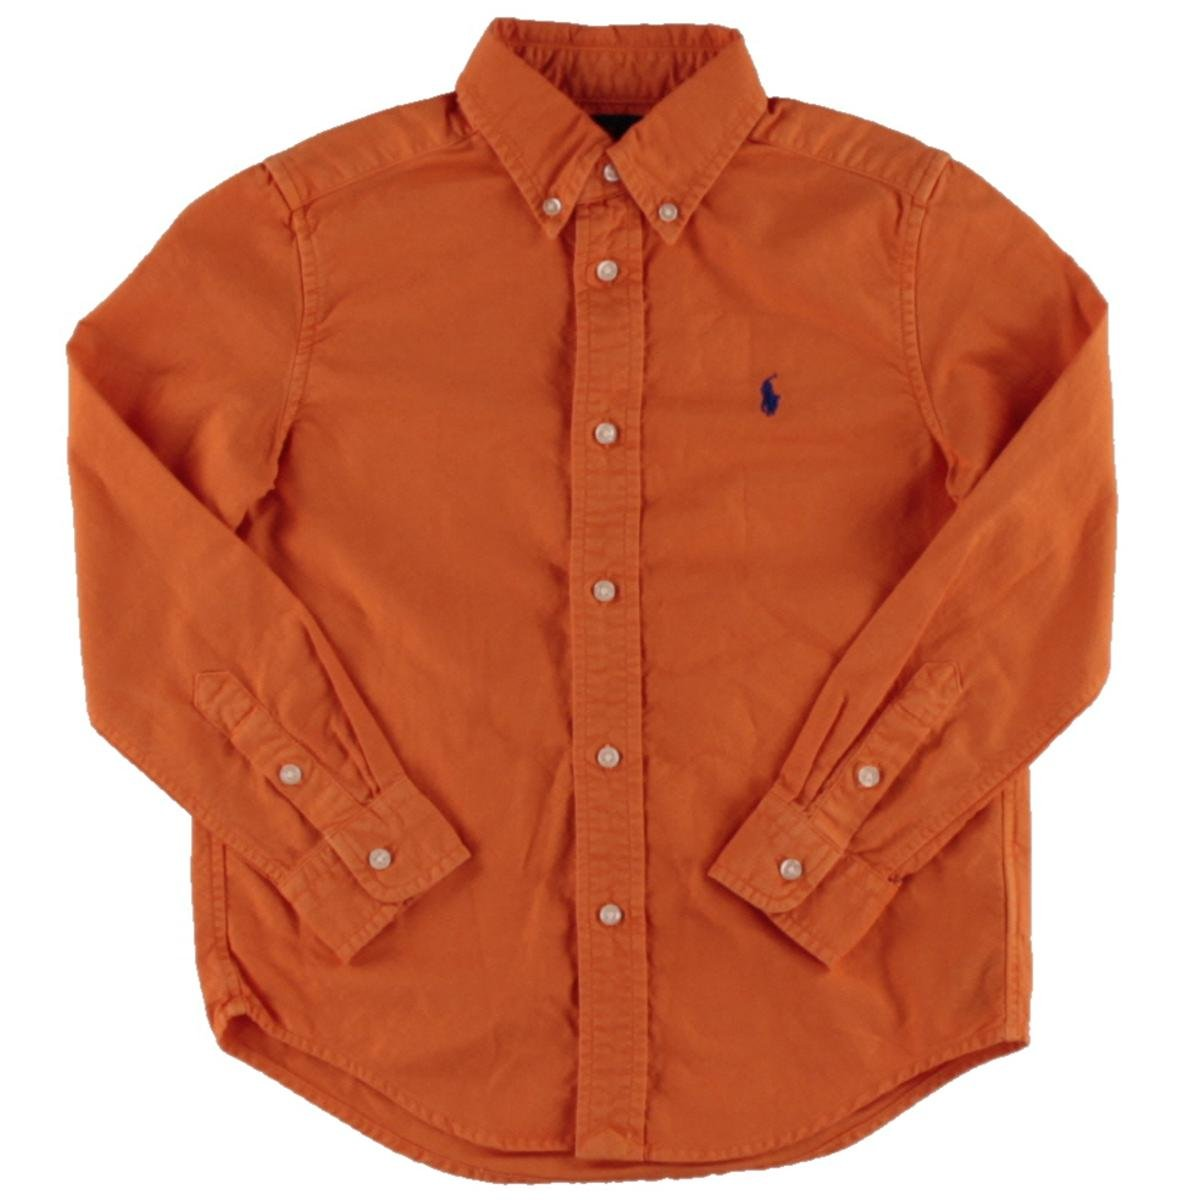 Polo Ralph Lauren Boy's Long Sleeve Collared Shirt